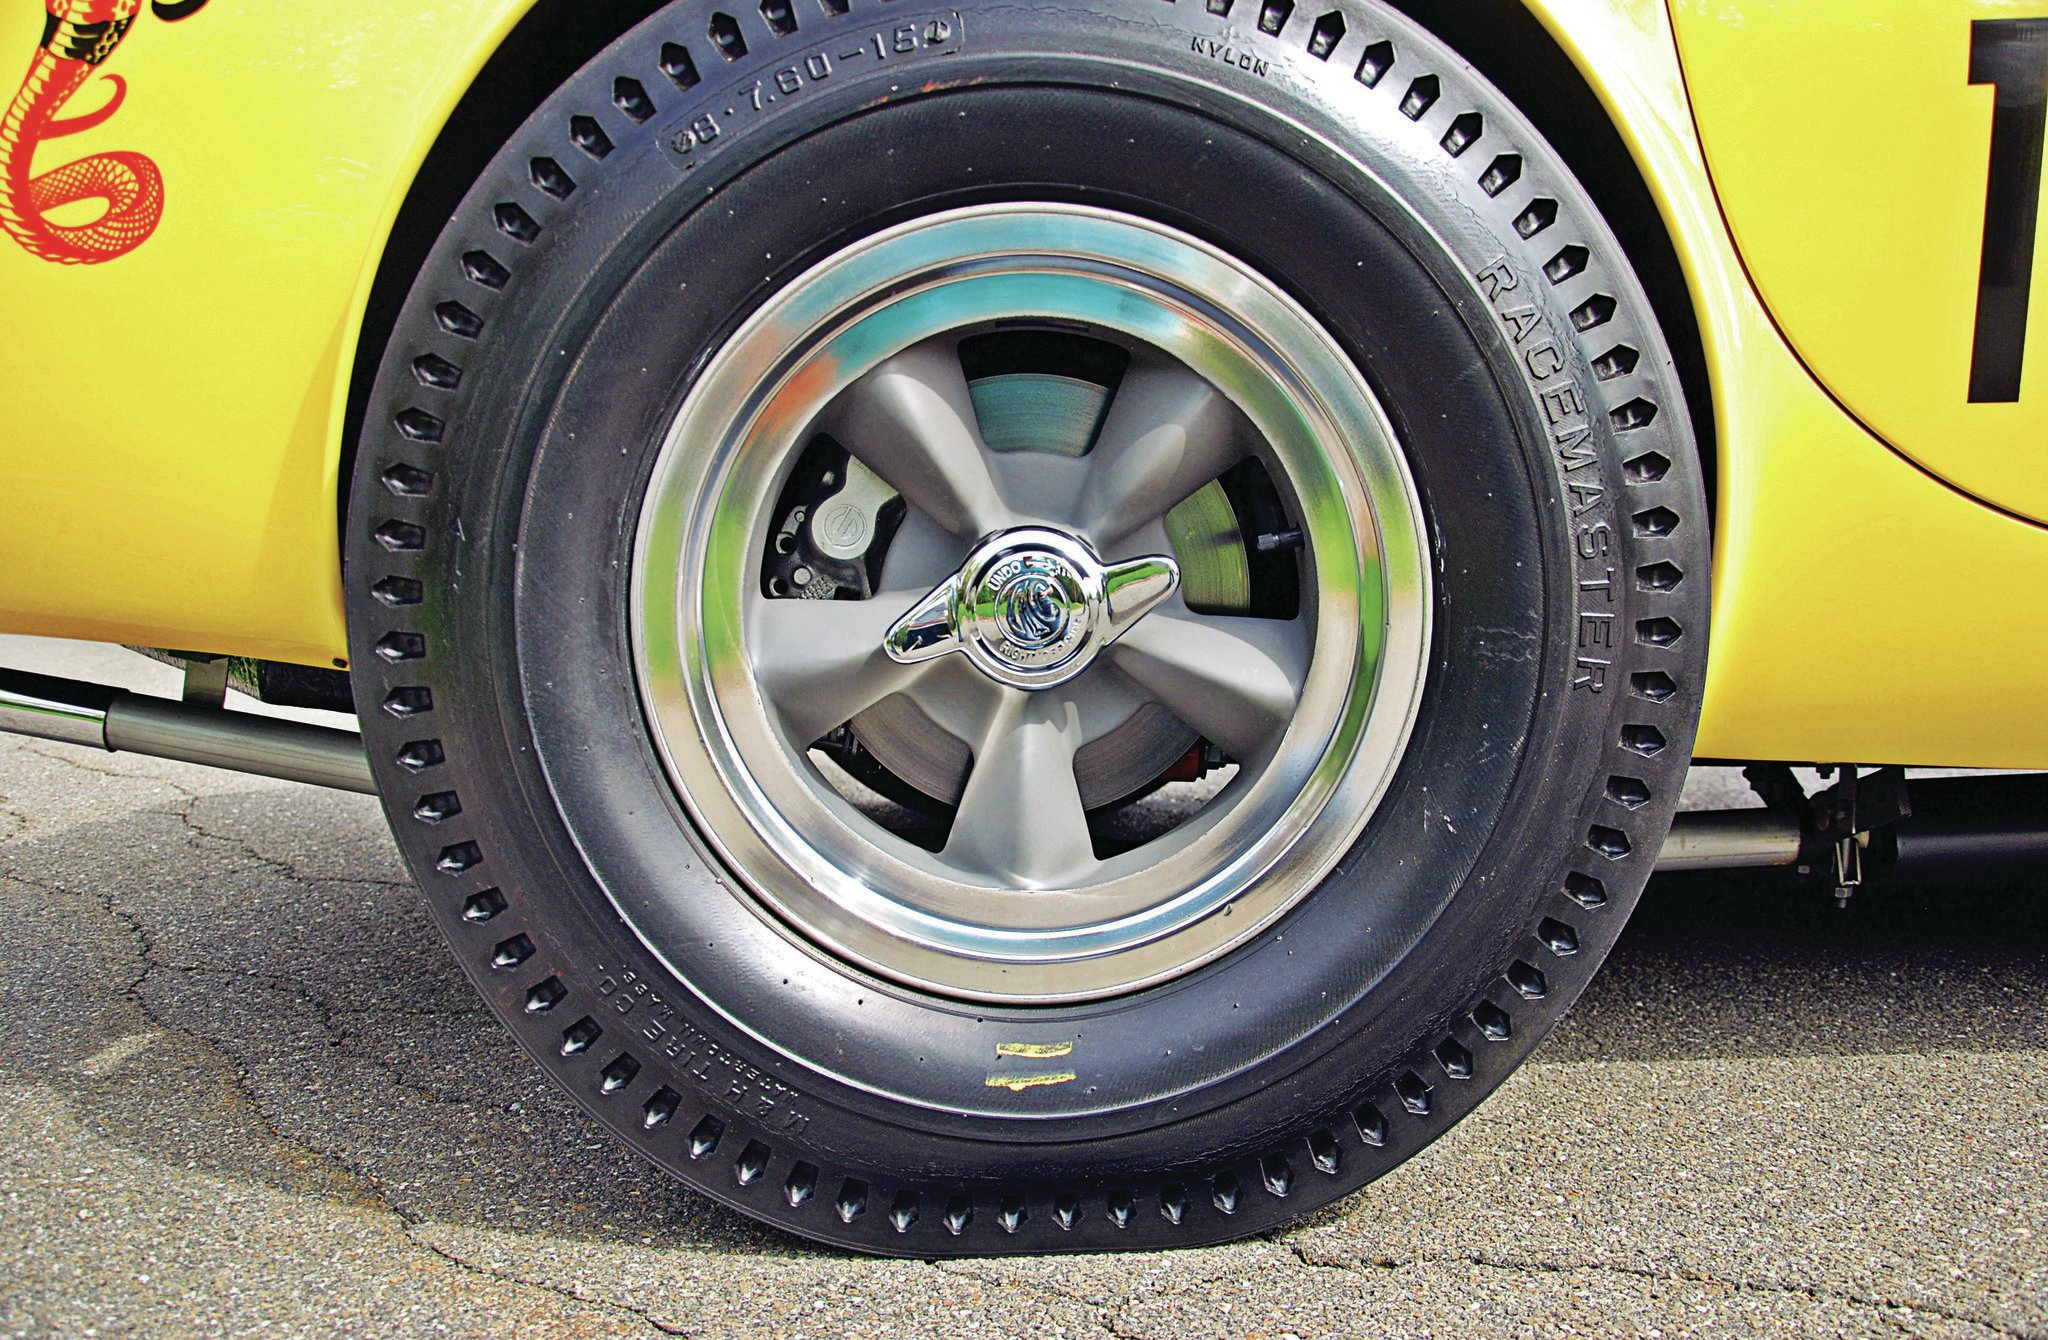 Steve sourced the correct tires from his immense collection of NOS rubber.